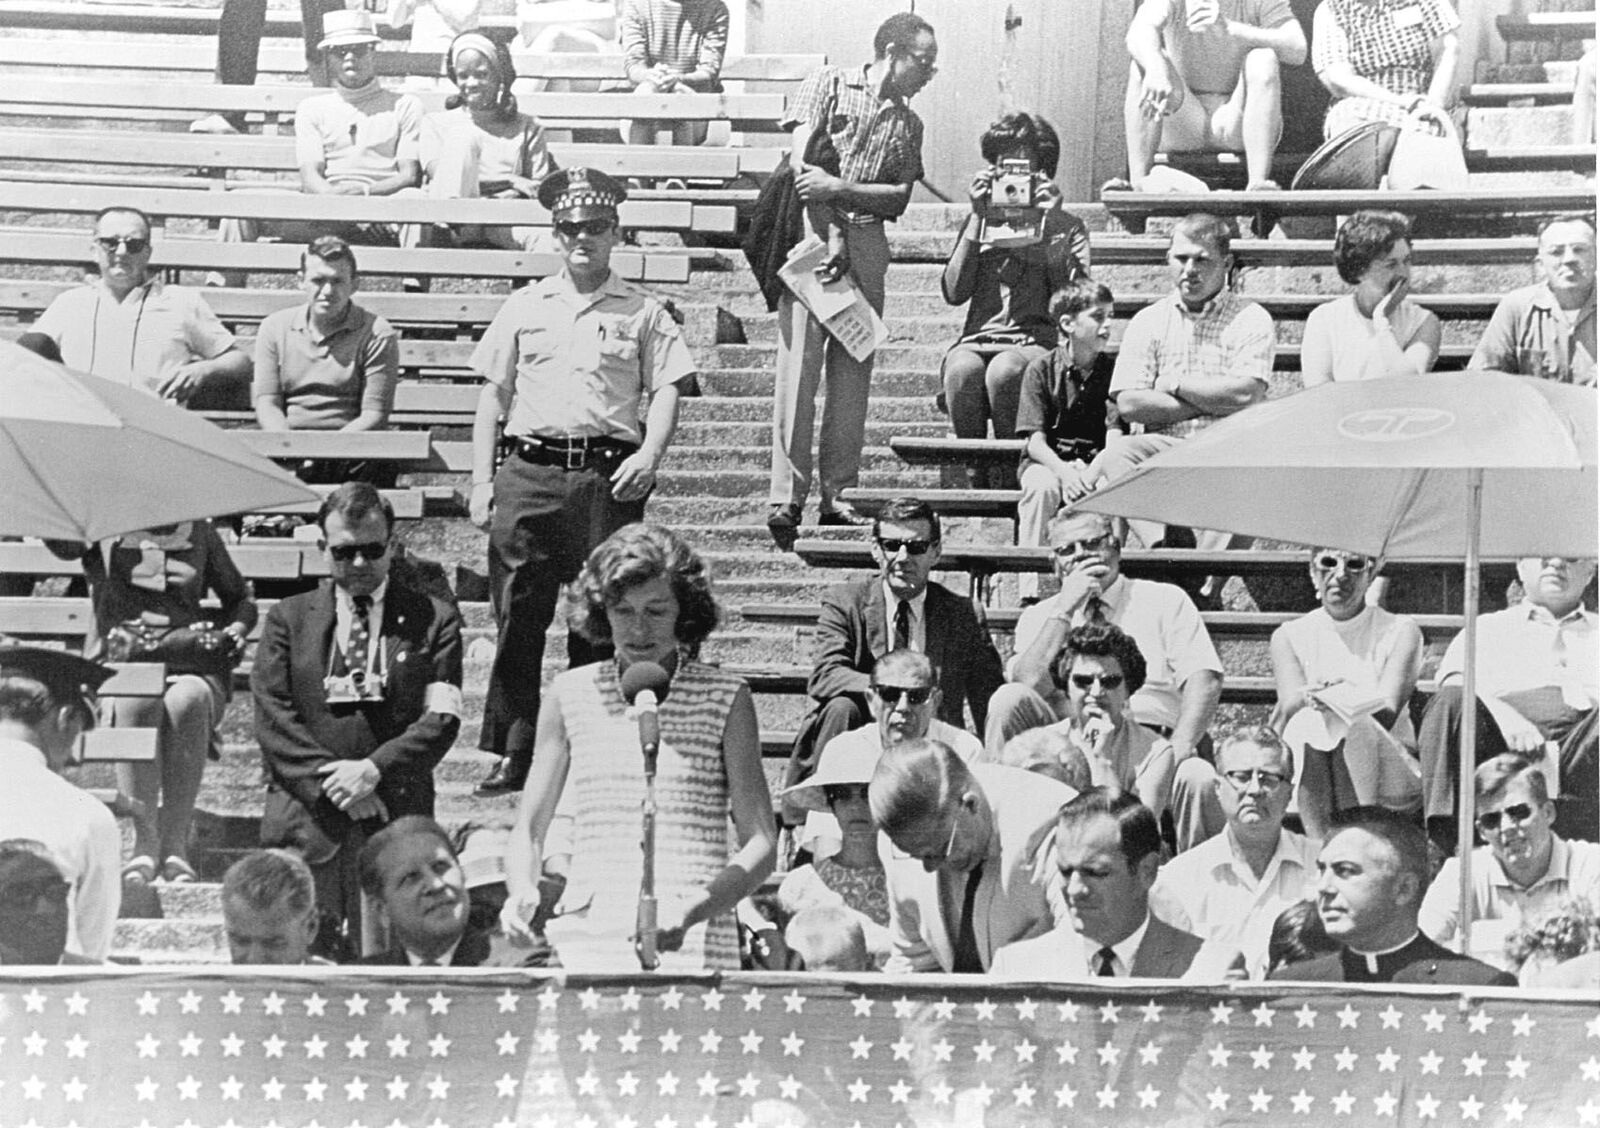 Black and white photo of people on bleachers watching a woman speak at a microphone.